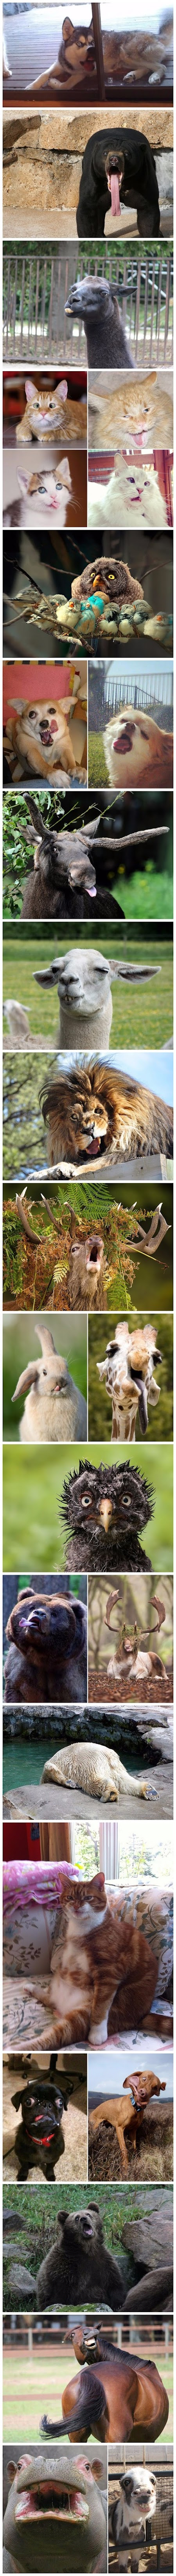 Funny World's Derpiest Animals Joke Picture